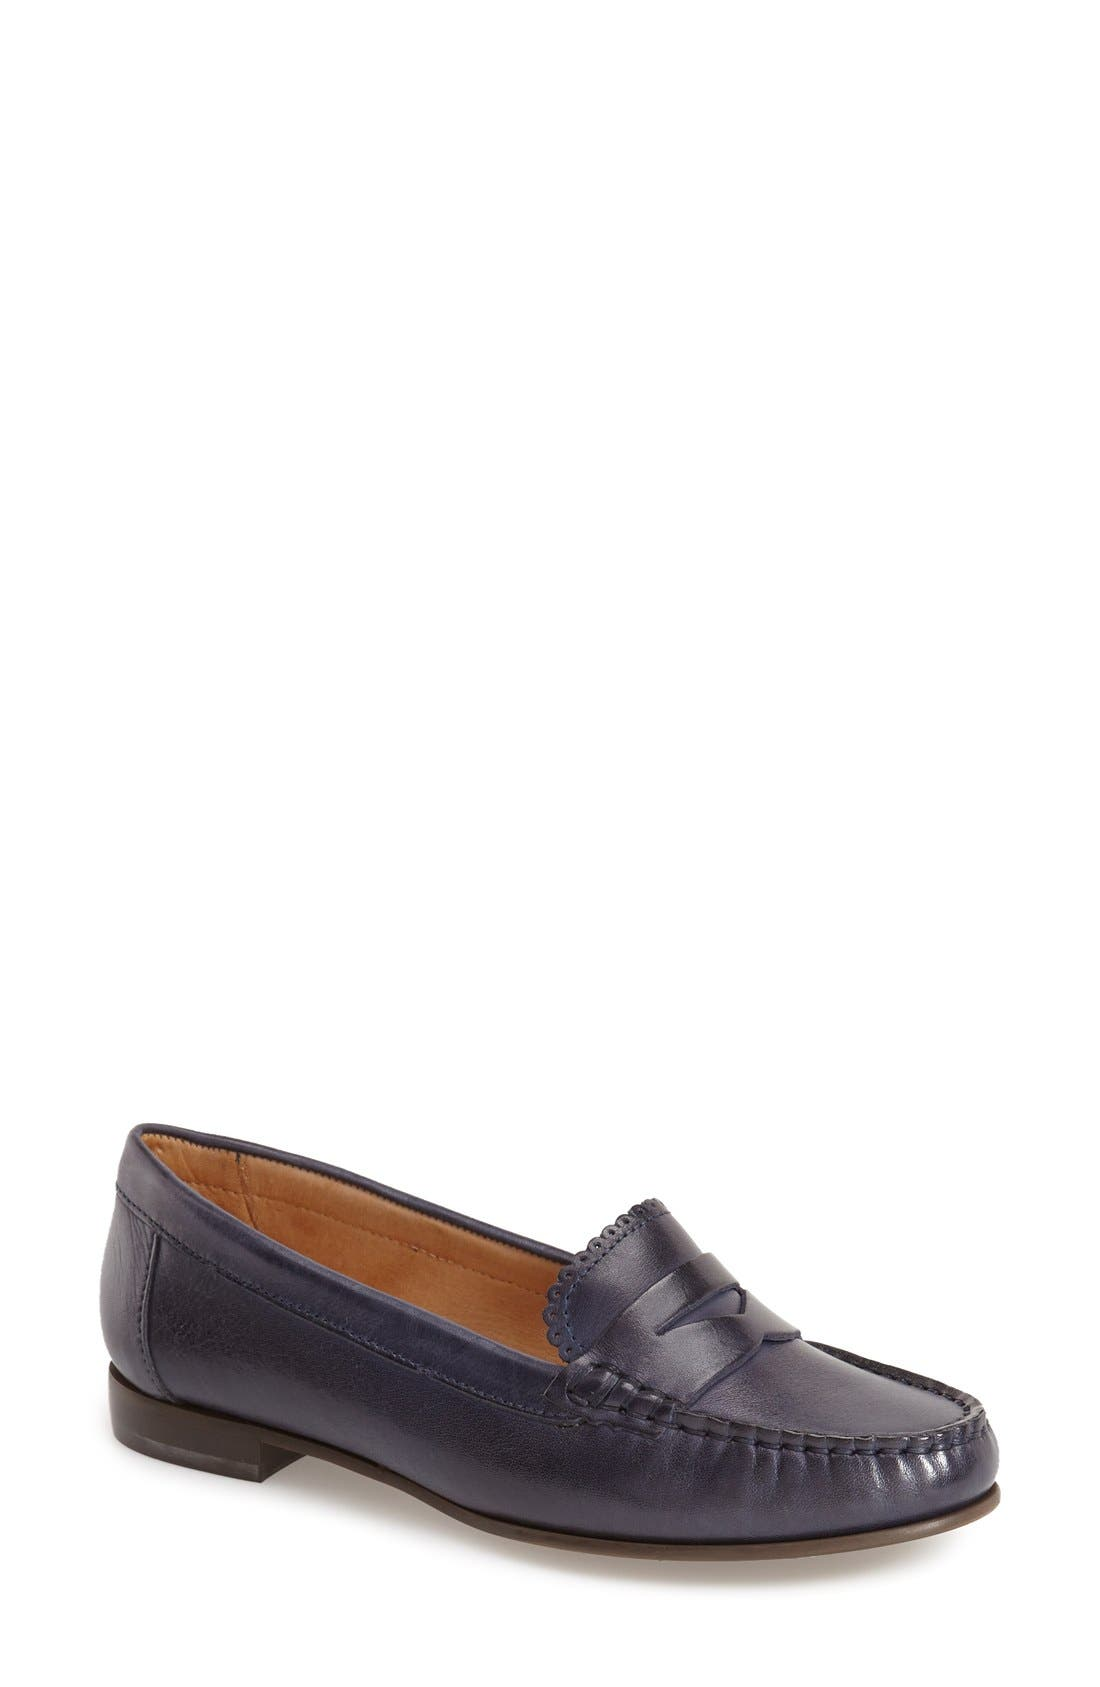 'Quinn' Leather Loafer,                             Main thumbnail 5, color,